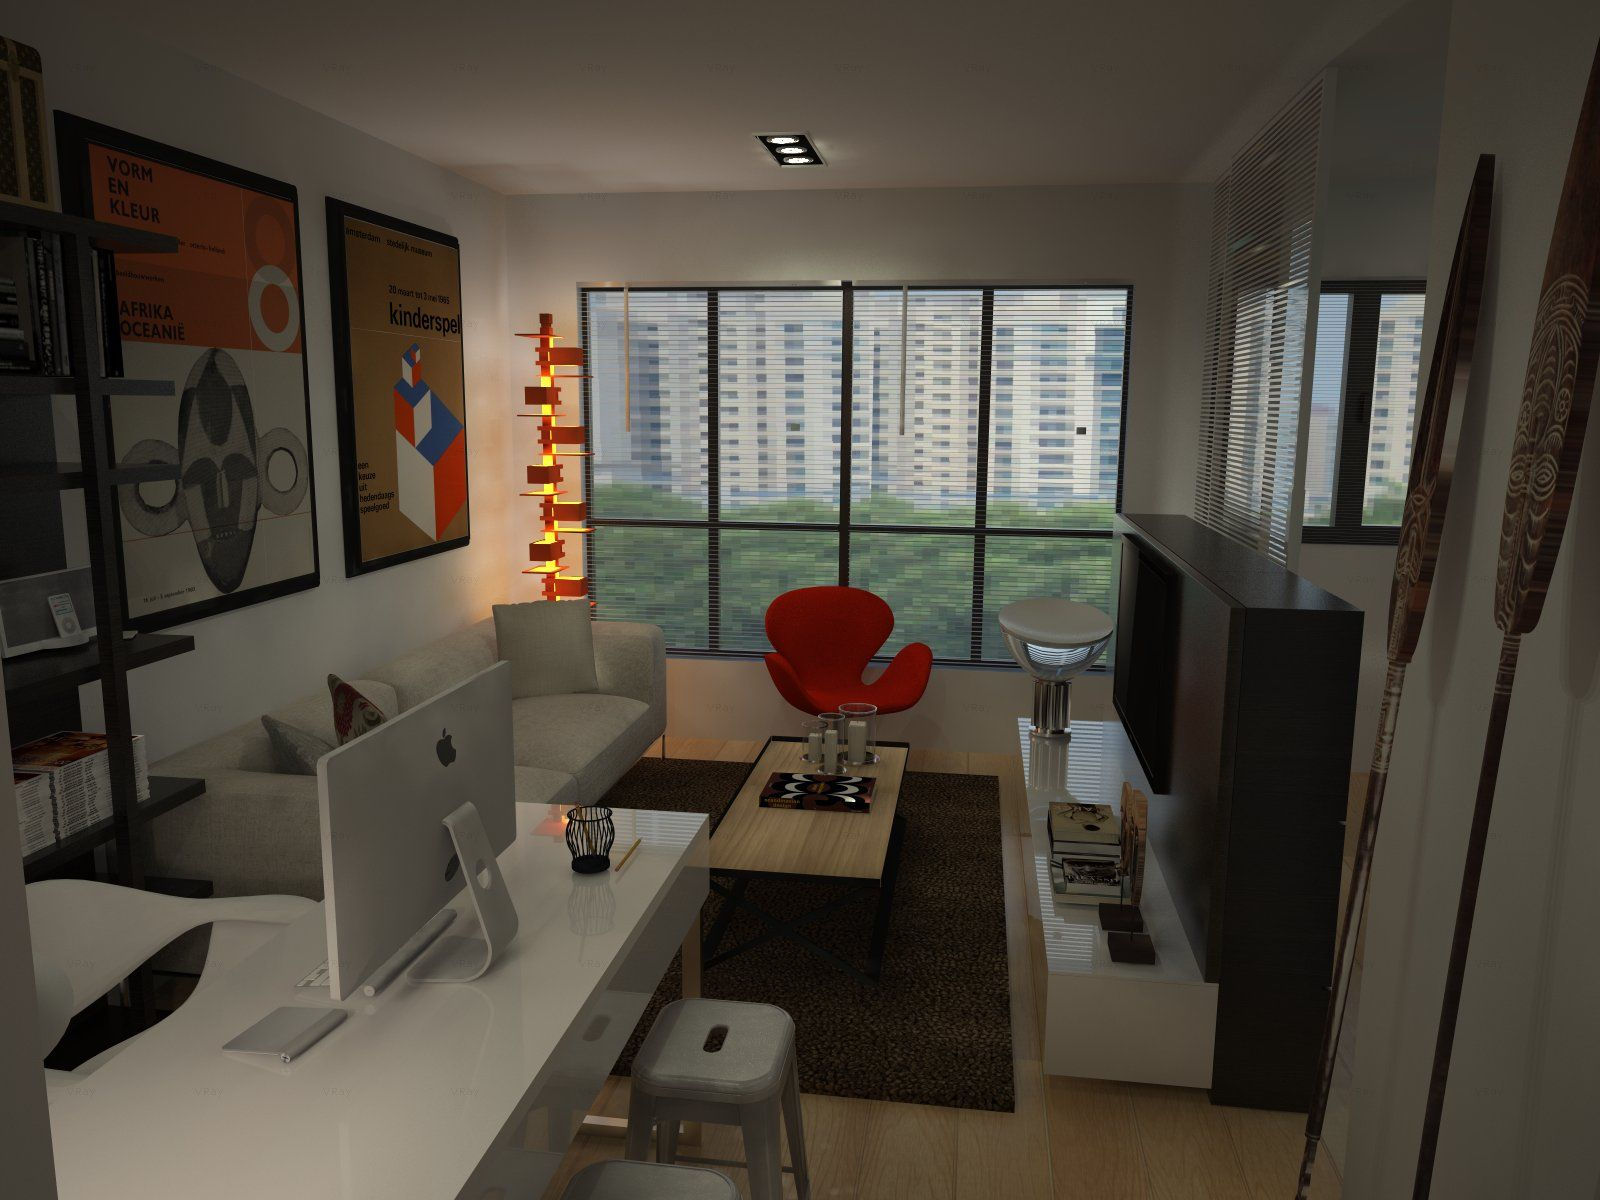 Hdb bto for singles 2 room 47sqm hdb apartment in for Interior design for 5 room hdb flat